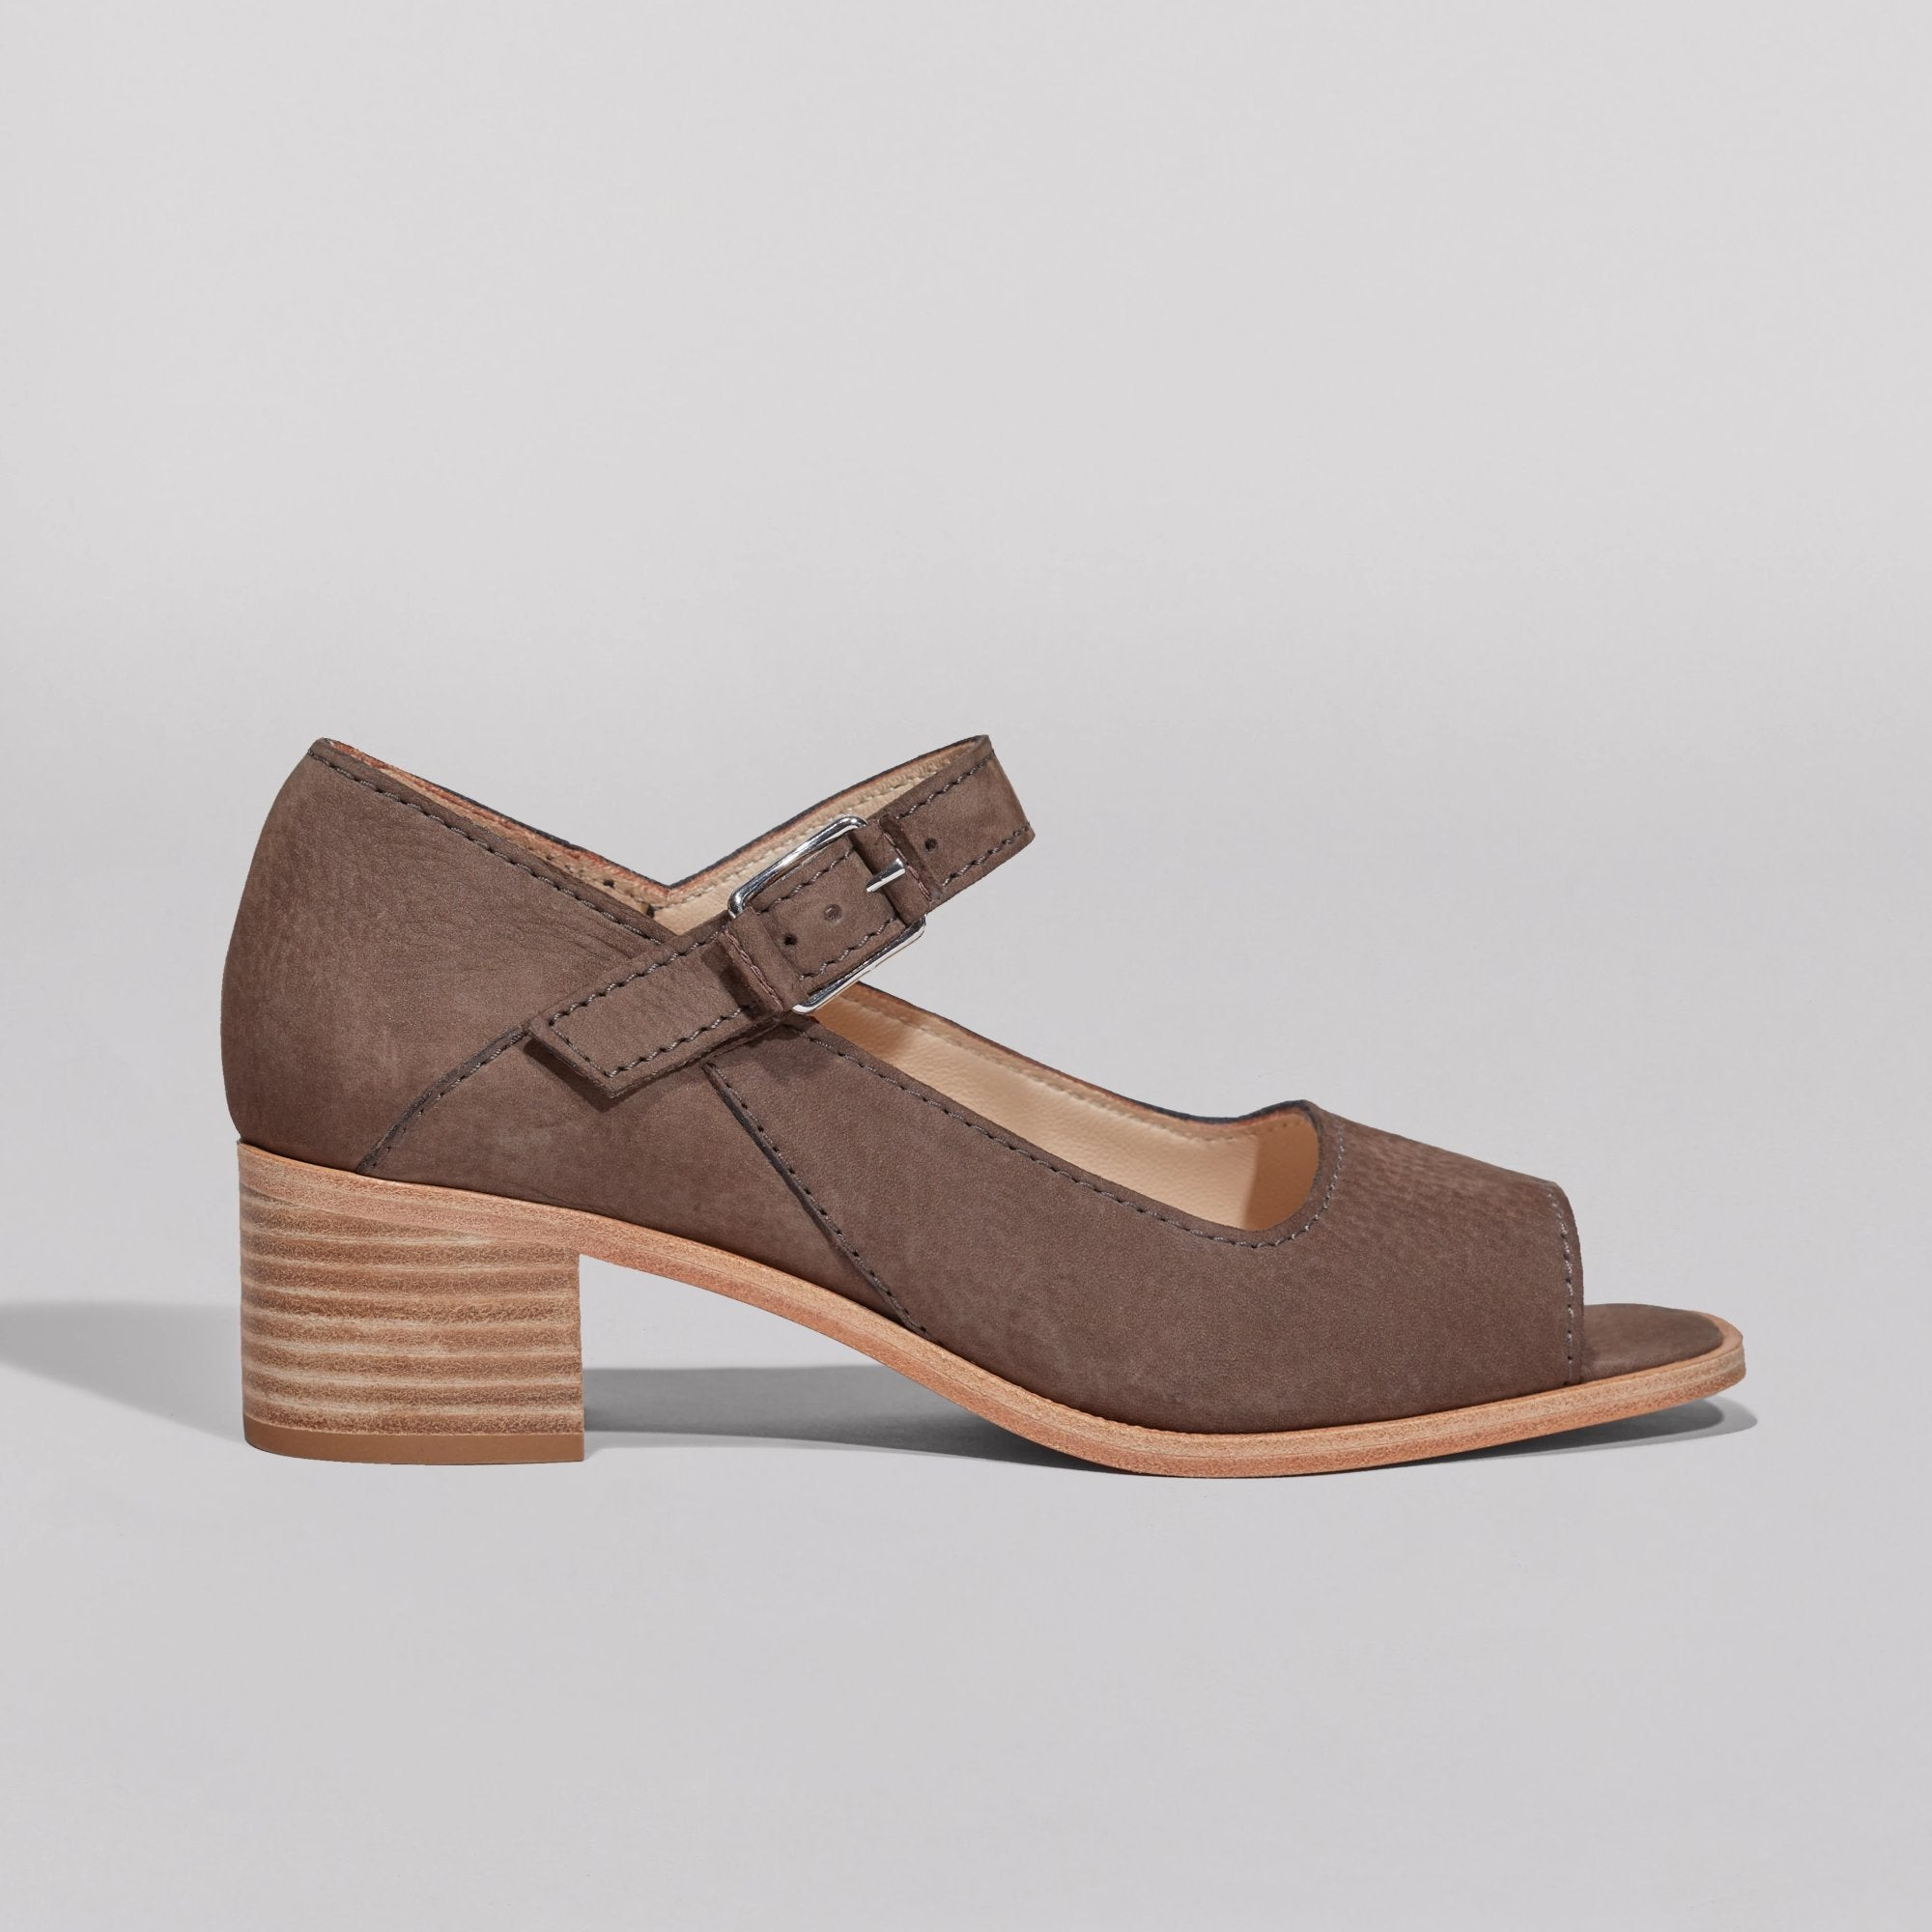 Wilder shoes - brown nubuck leather open-toe mary jane mid-heel women's sandal - Constance - wildershop.com - profile view